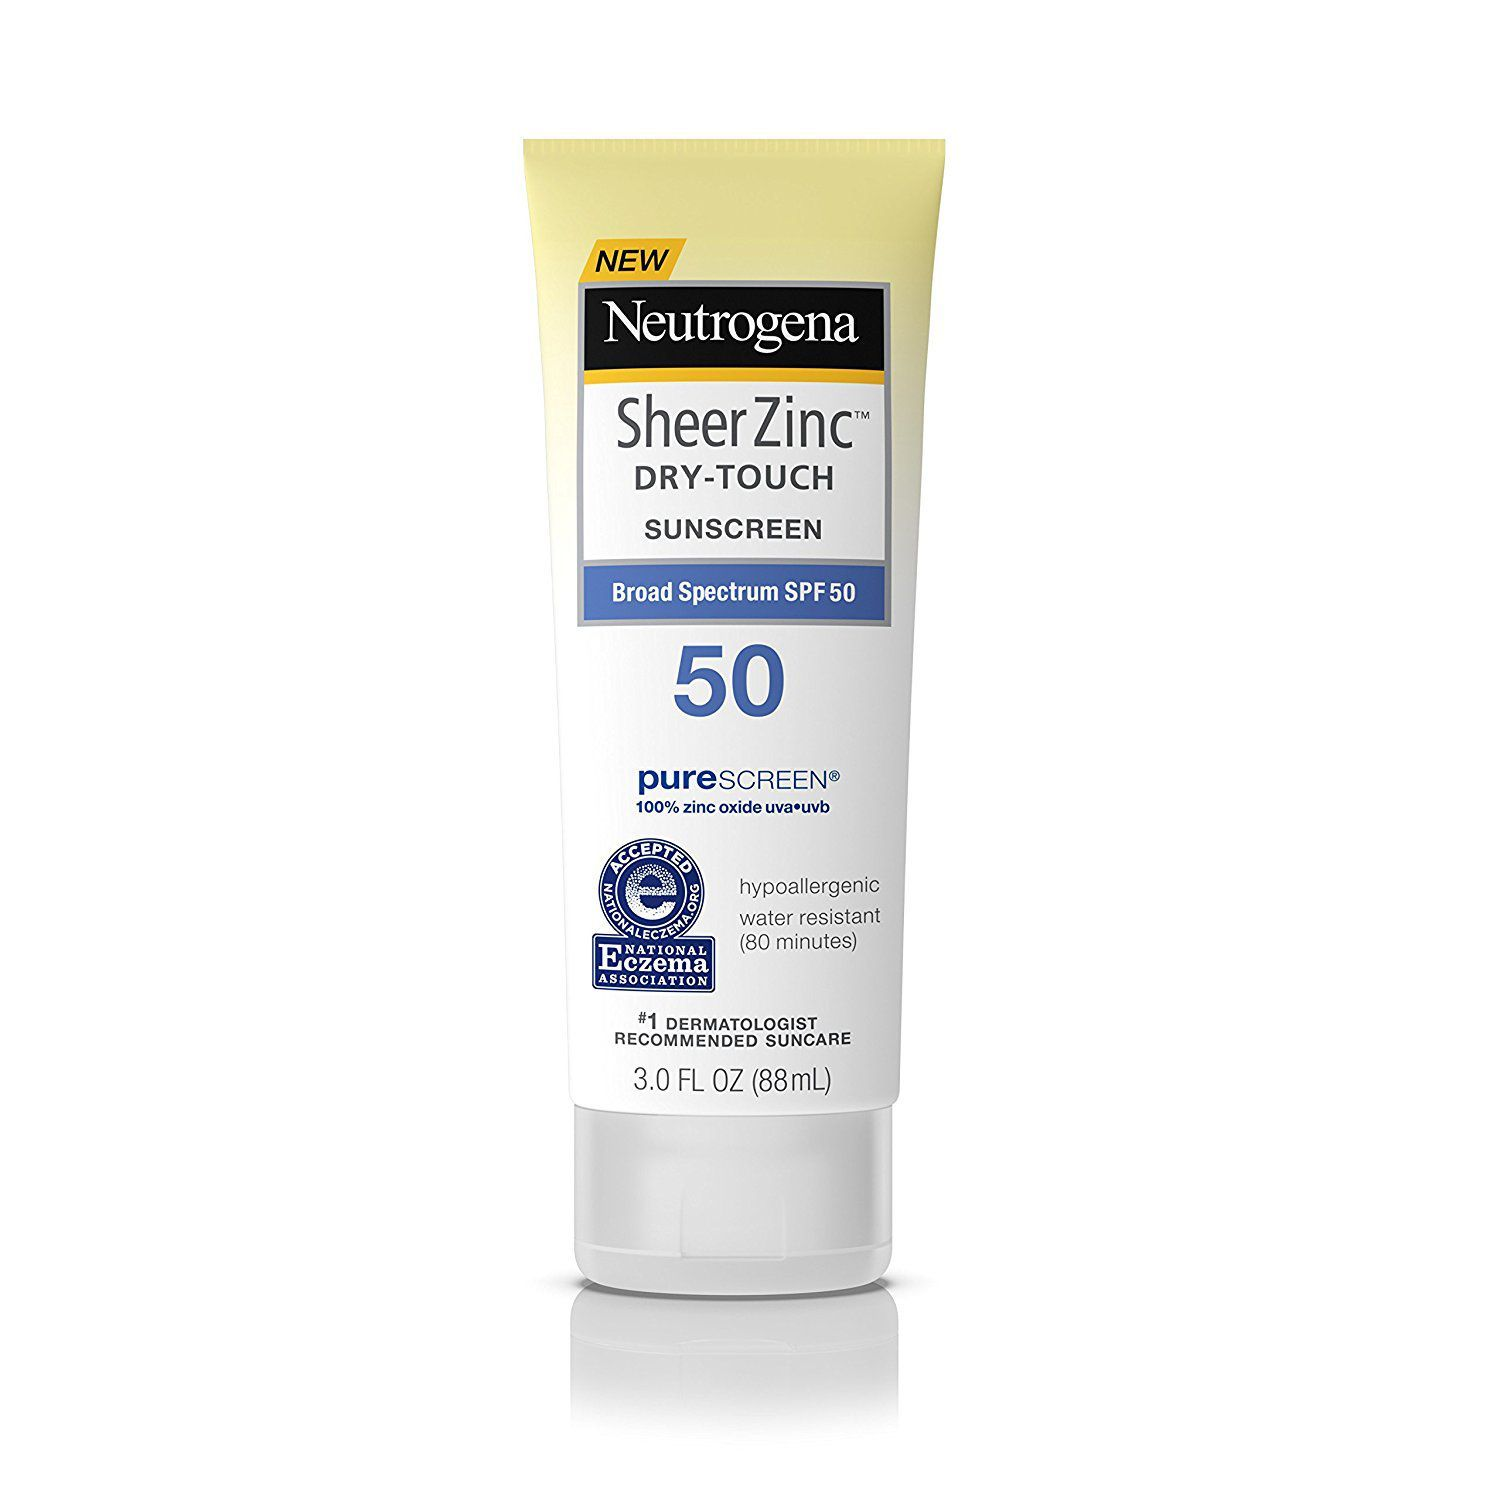 Neutrogena SheerZinc Dry-Touch Sunscreen SPF 50